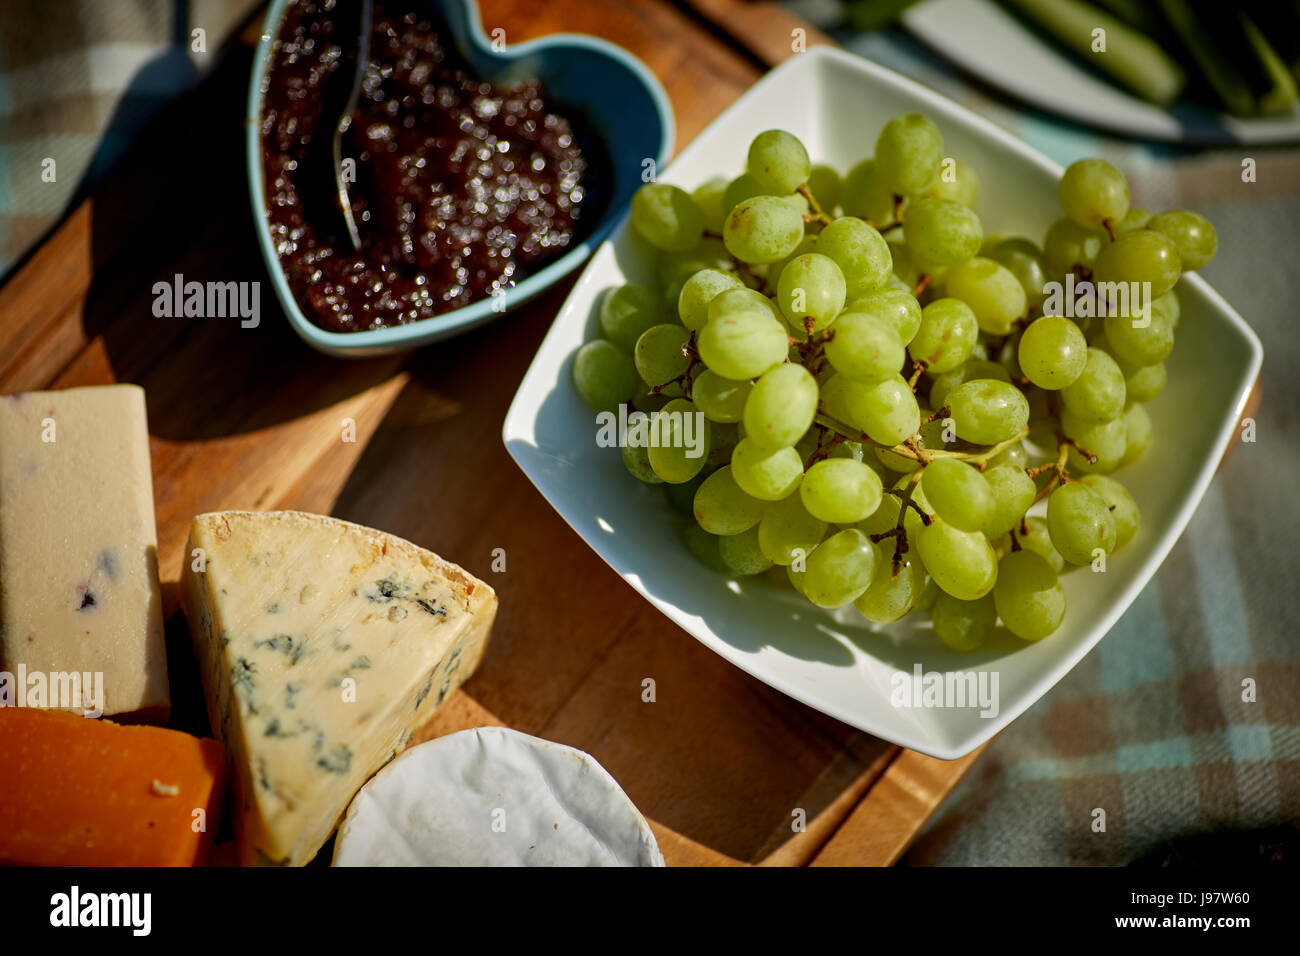 Traditional picnic food, with healthy options. - Stock Image